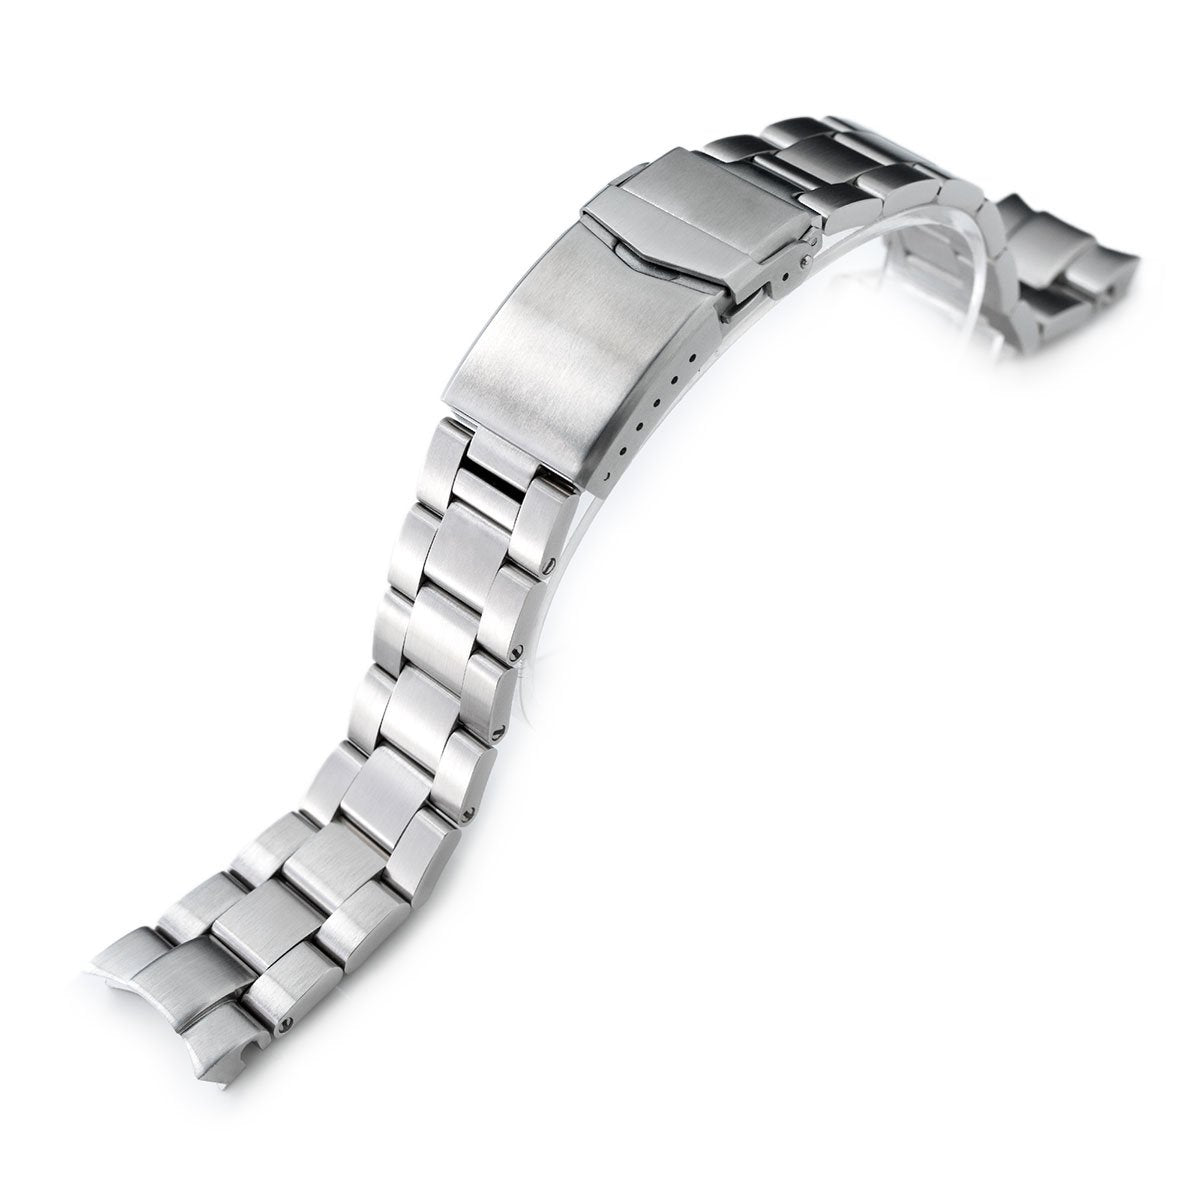 20mm Super-O Boyer watch band for Seiko Alpinist SARB017 (or Hamilton K.) Brushed V-Clasp Button Double Lock Strapcode Watch Bands